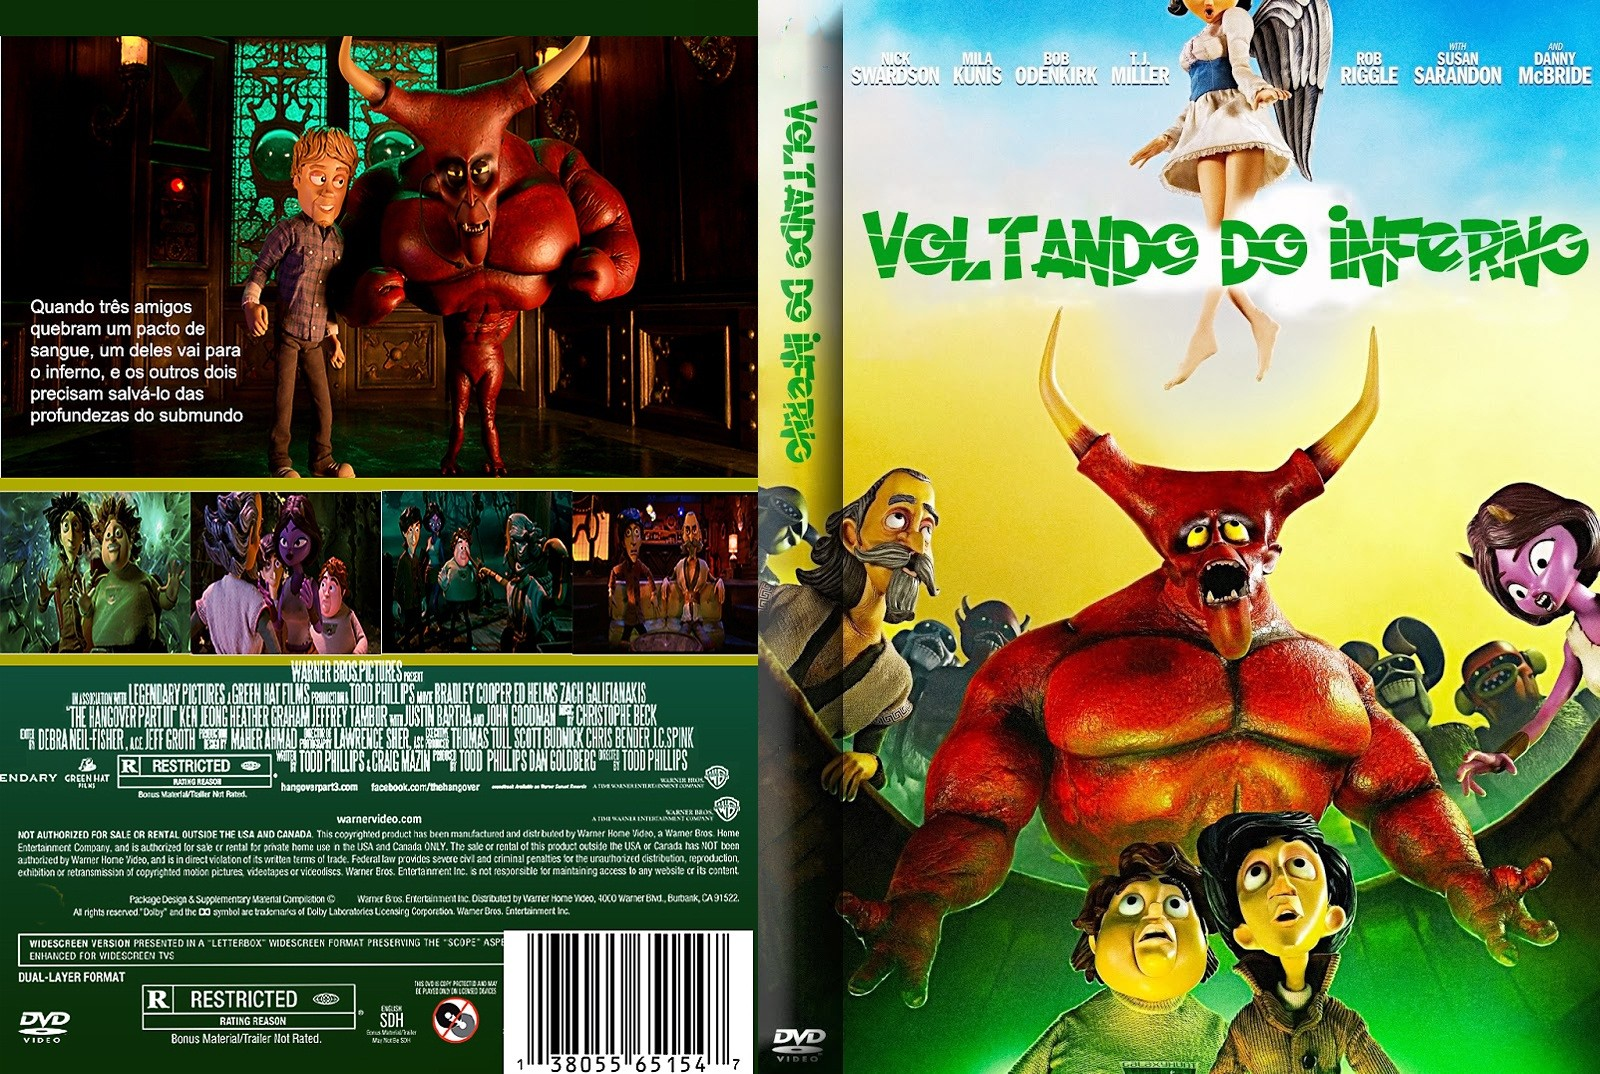 Download Voltando Do Inferno BDRip XviD Dual Áudio Voltando 2BDo 2BInferno 2B 25282016 2529